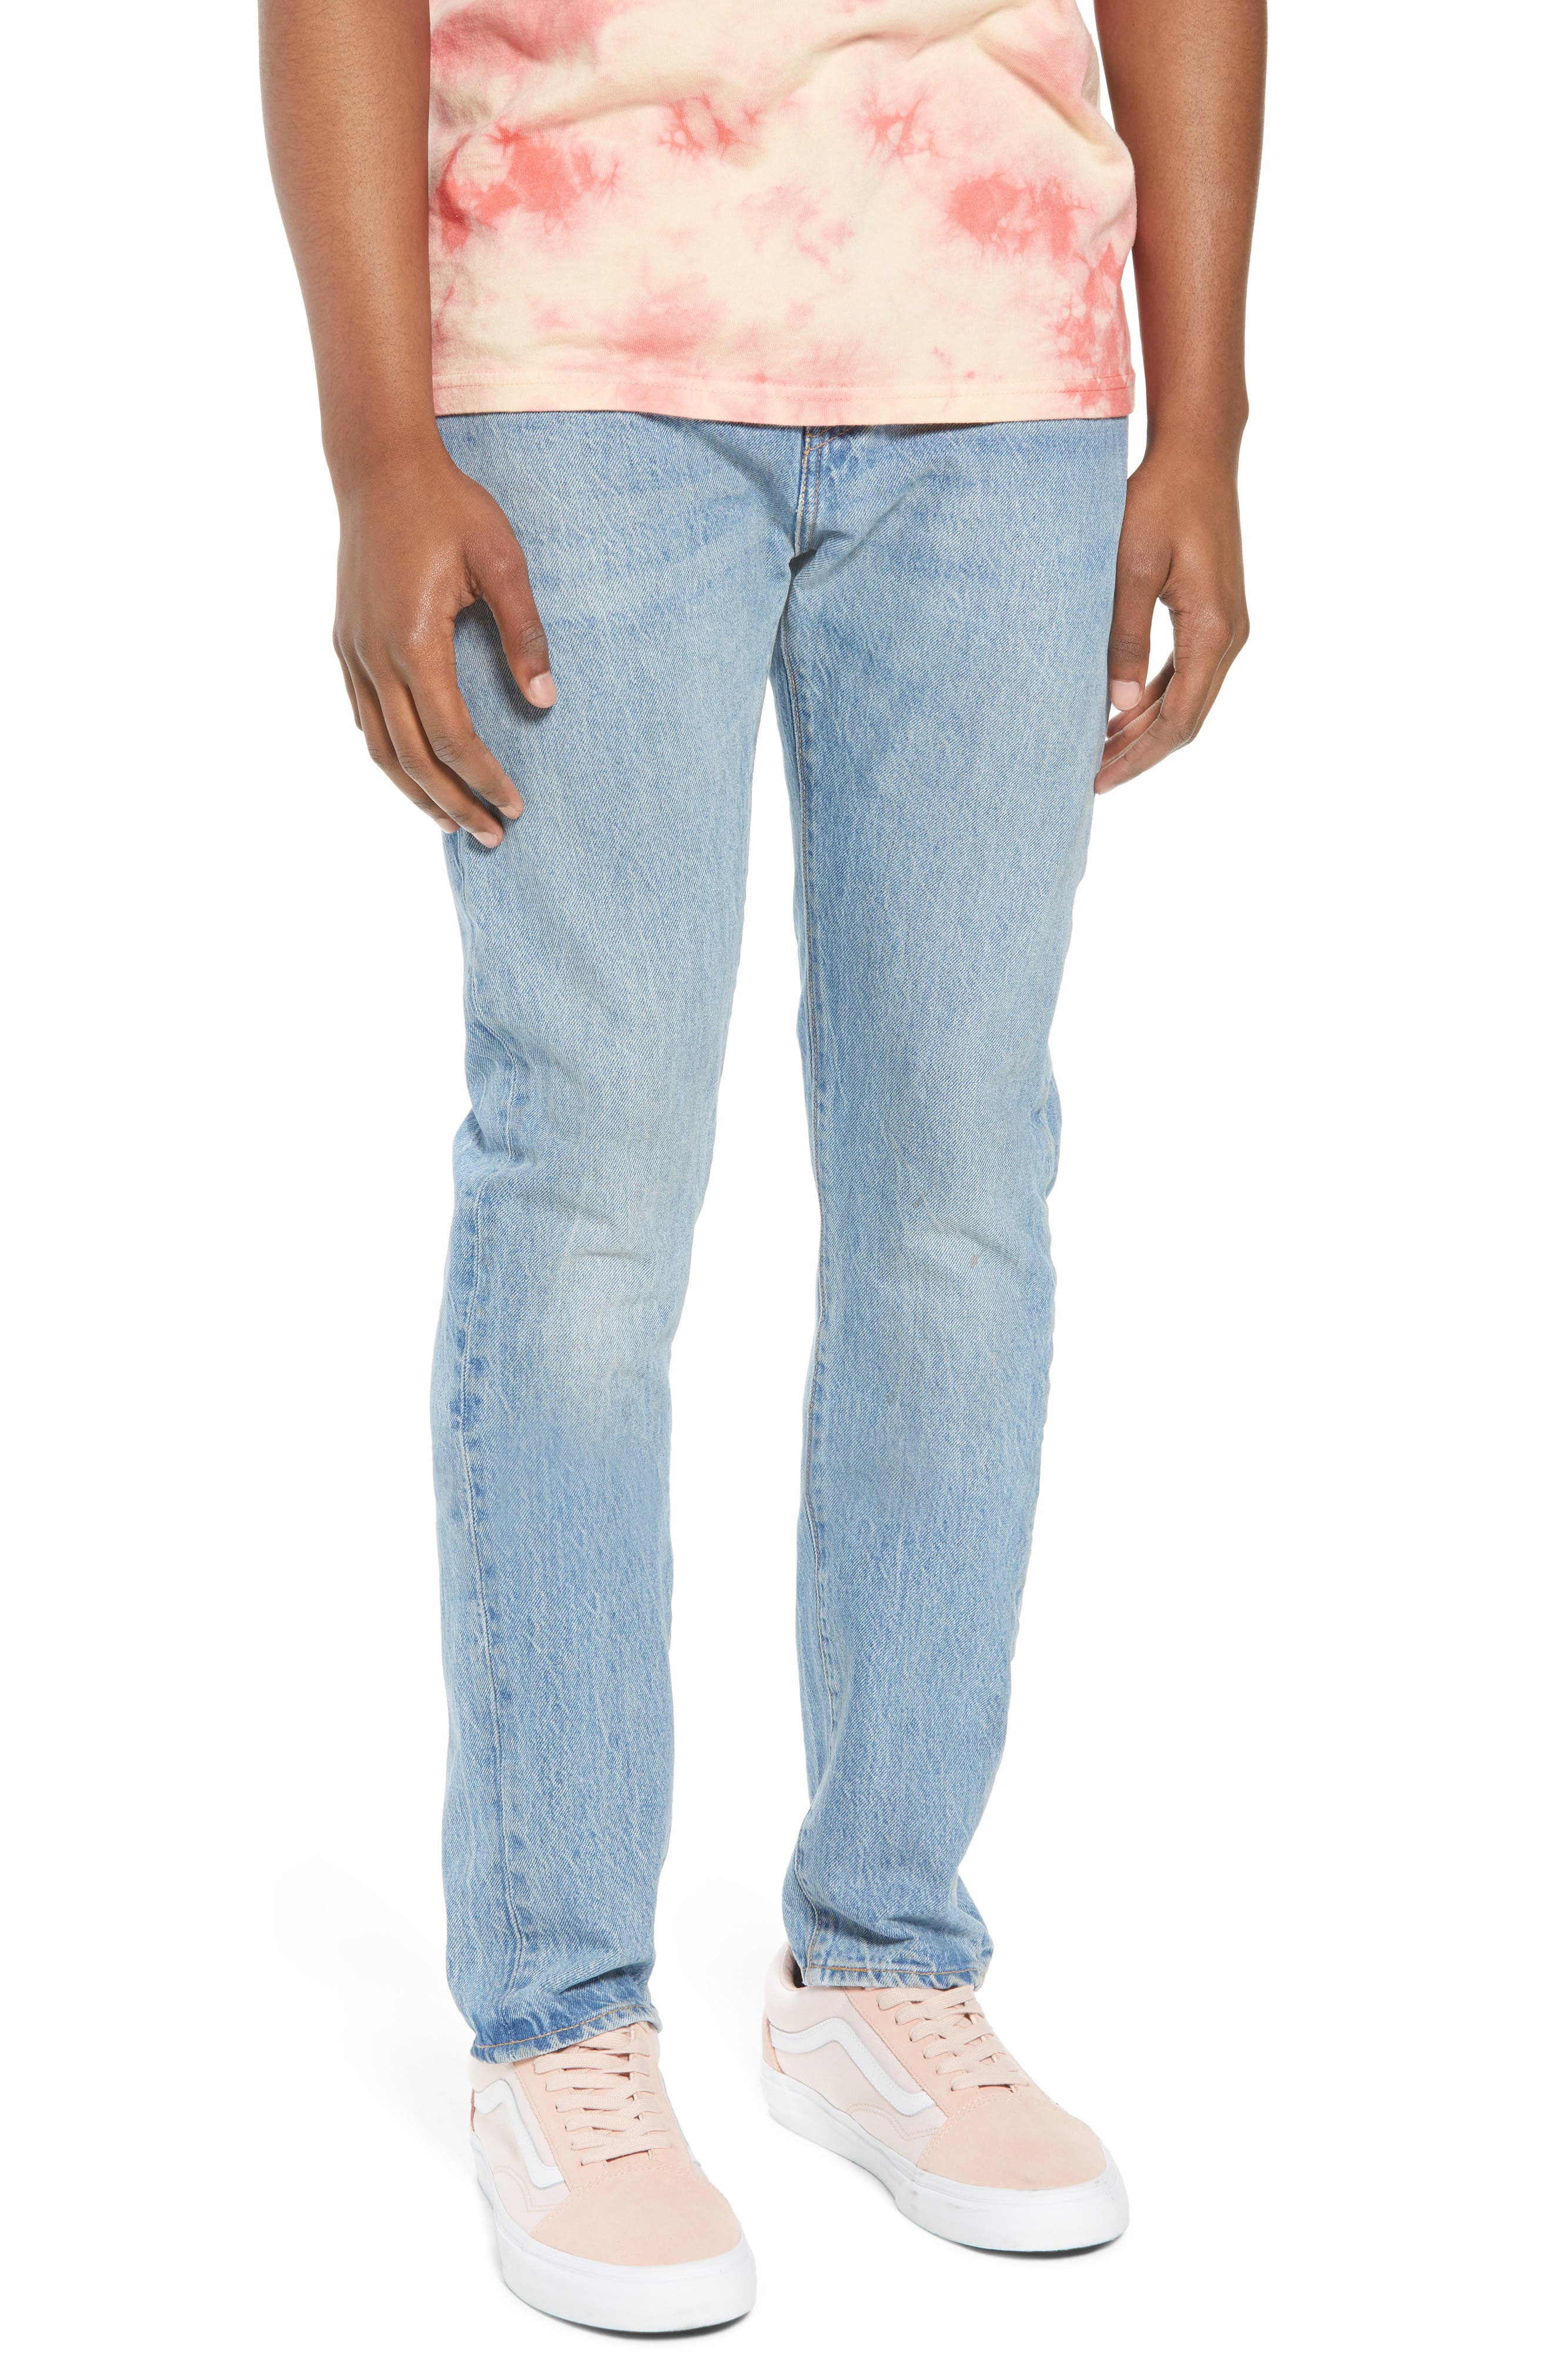 510™ Skinny Fit Jeans by Levi's®